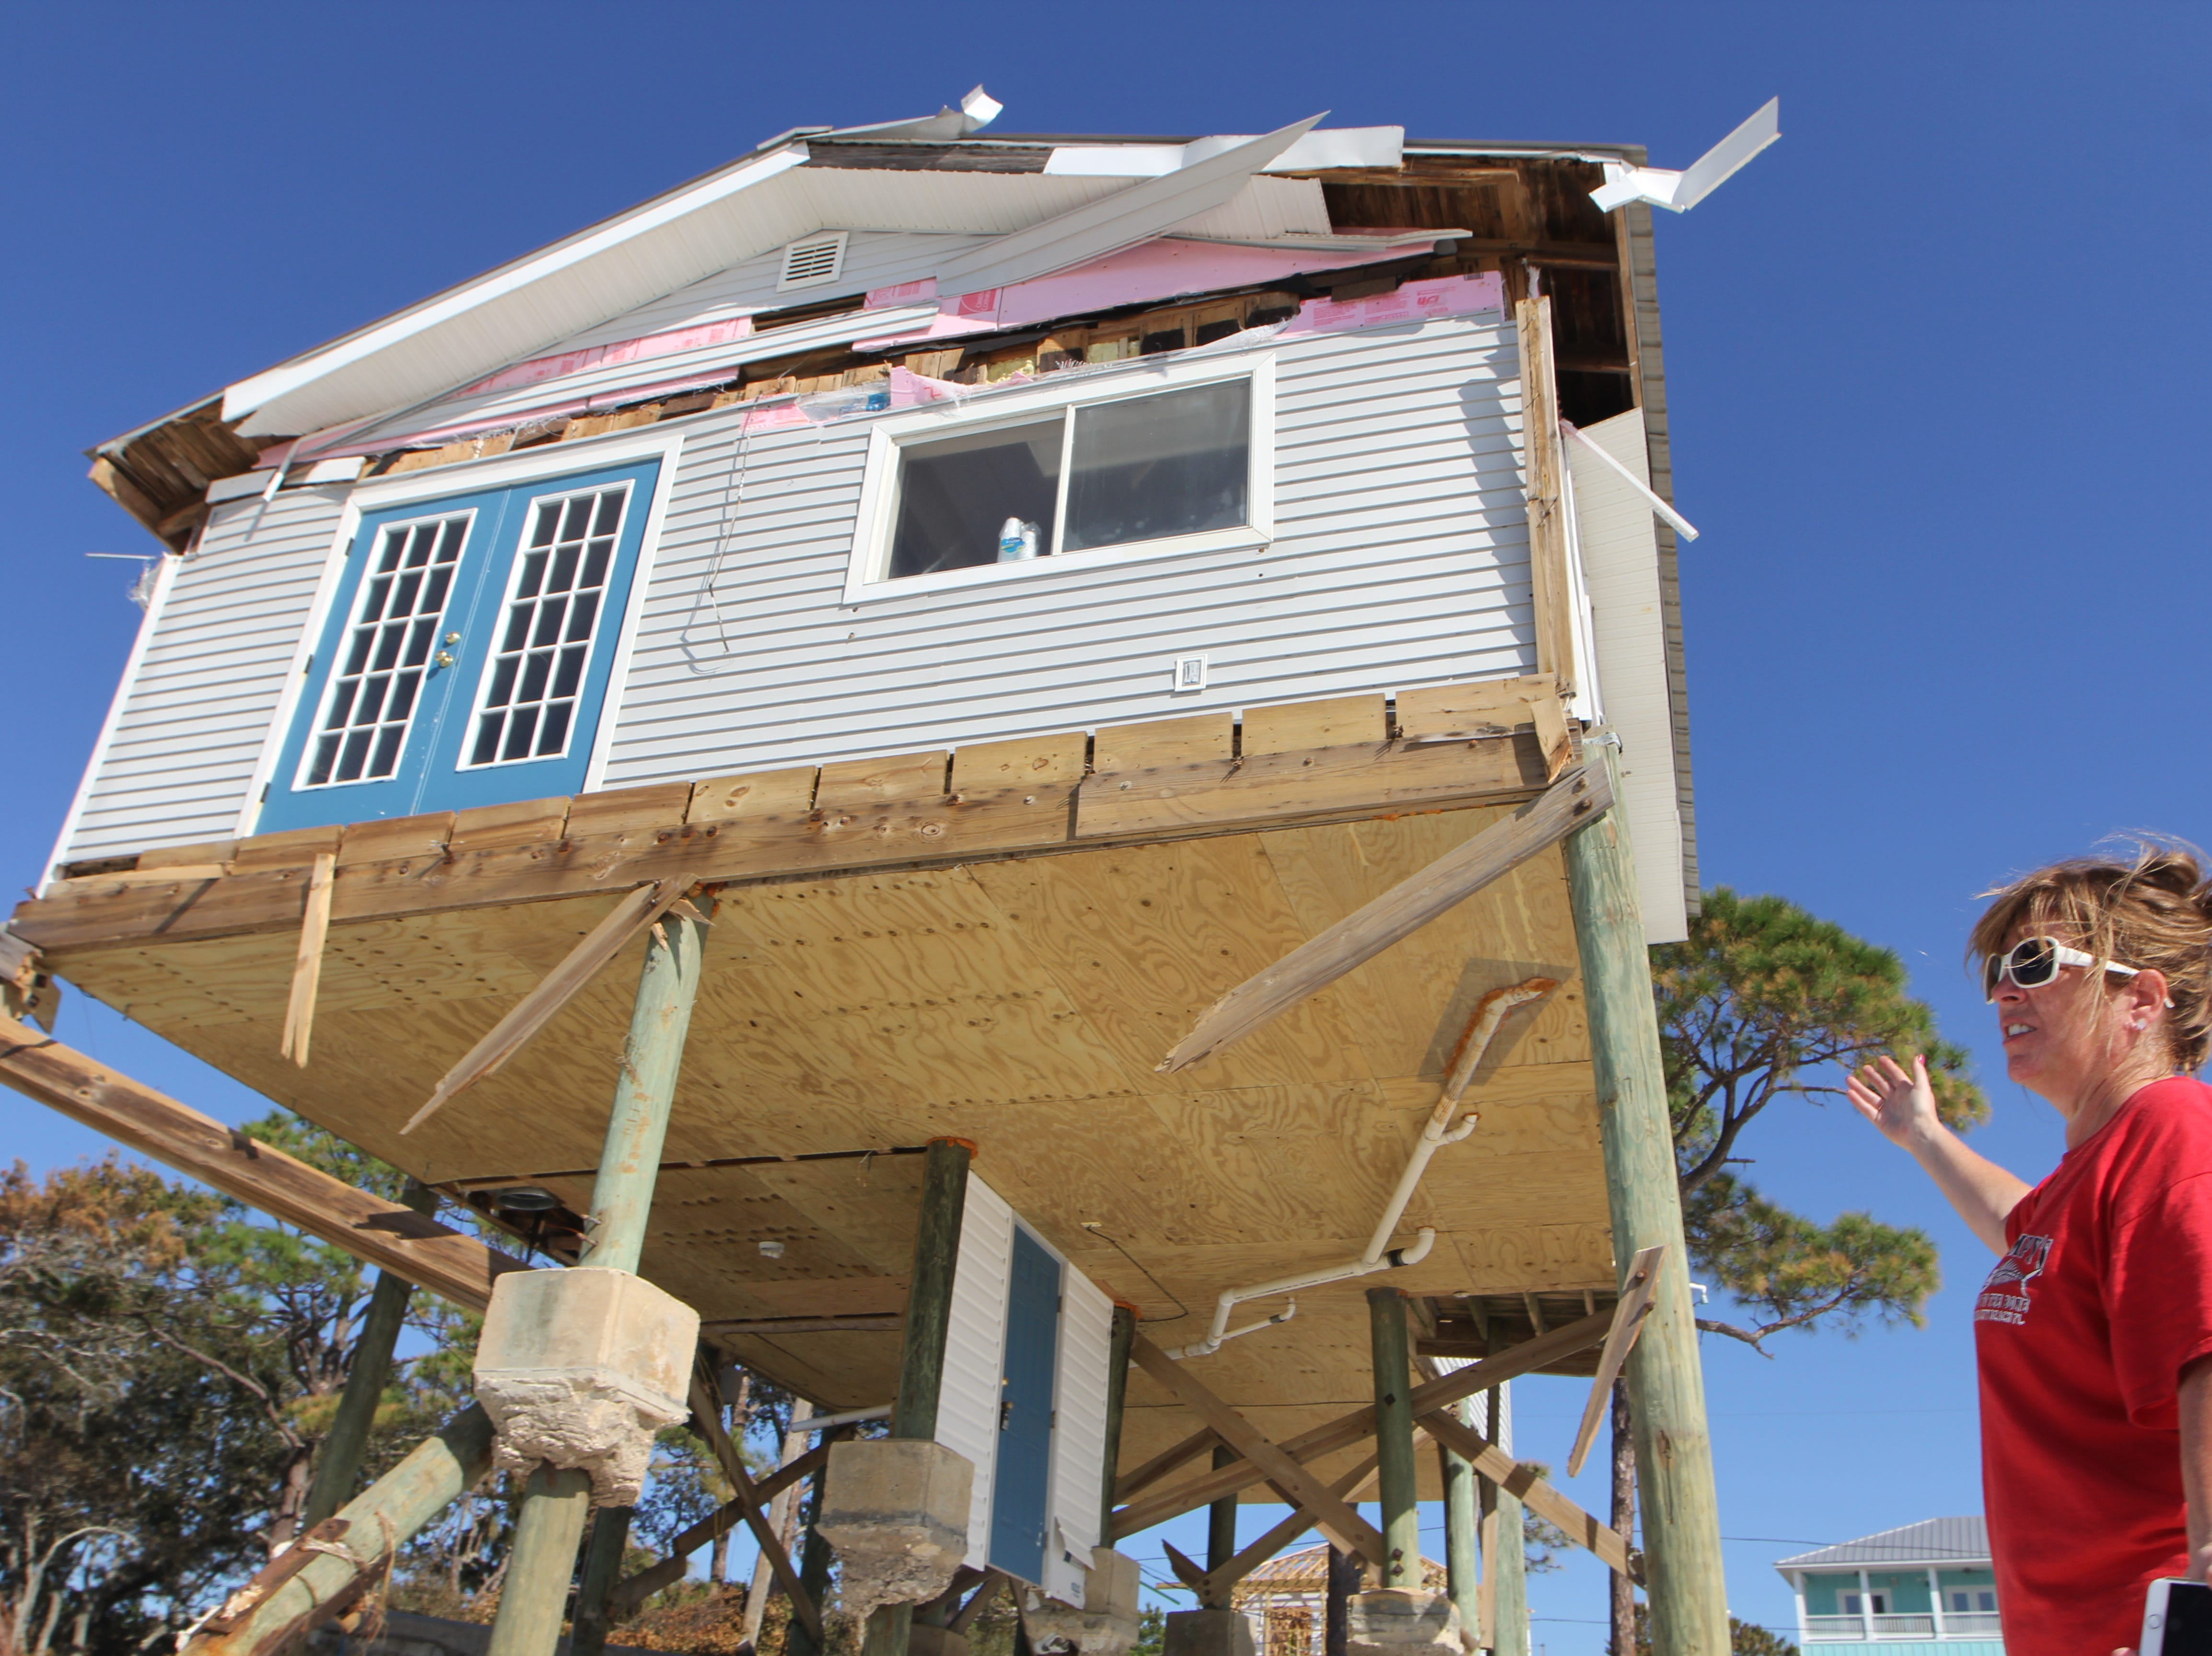 Tonia McNabb's house on Alligator Point sustained major damage during Hurricane Michael. The entire porch is gone.